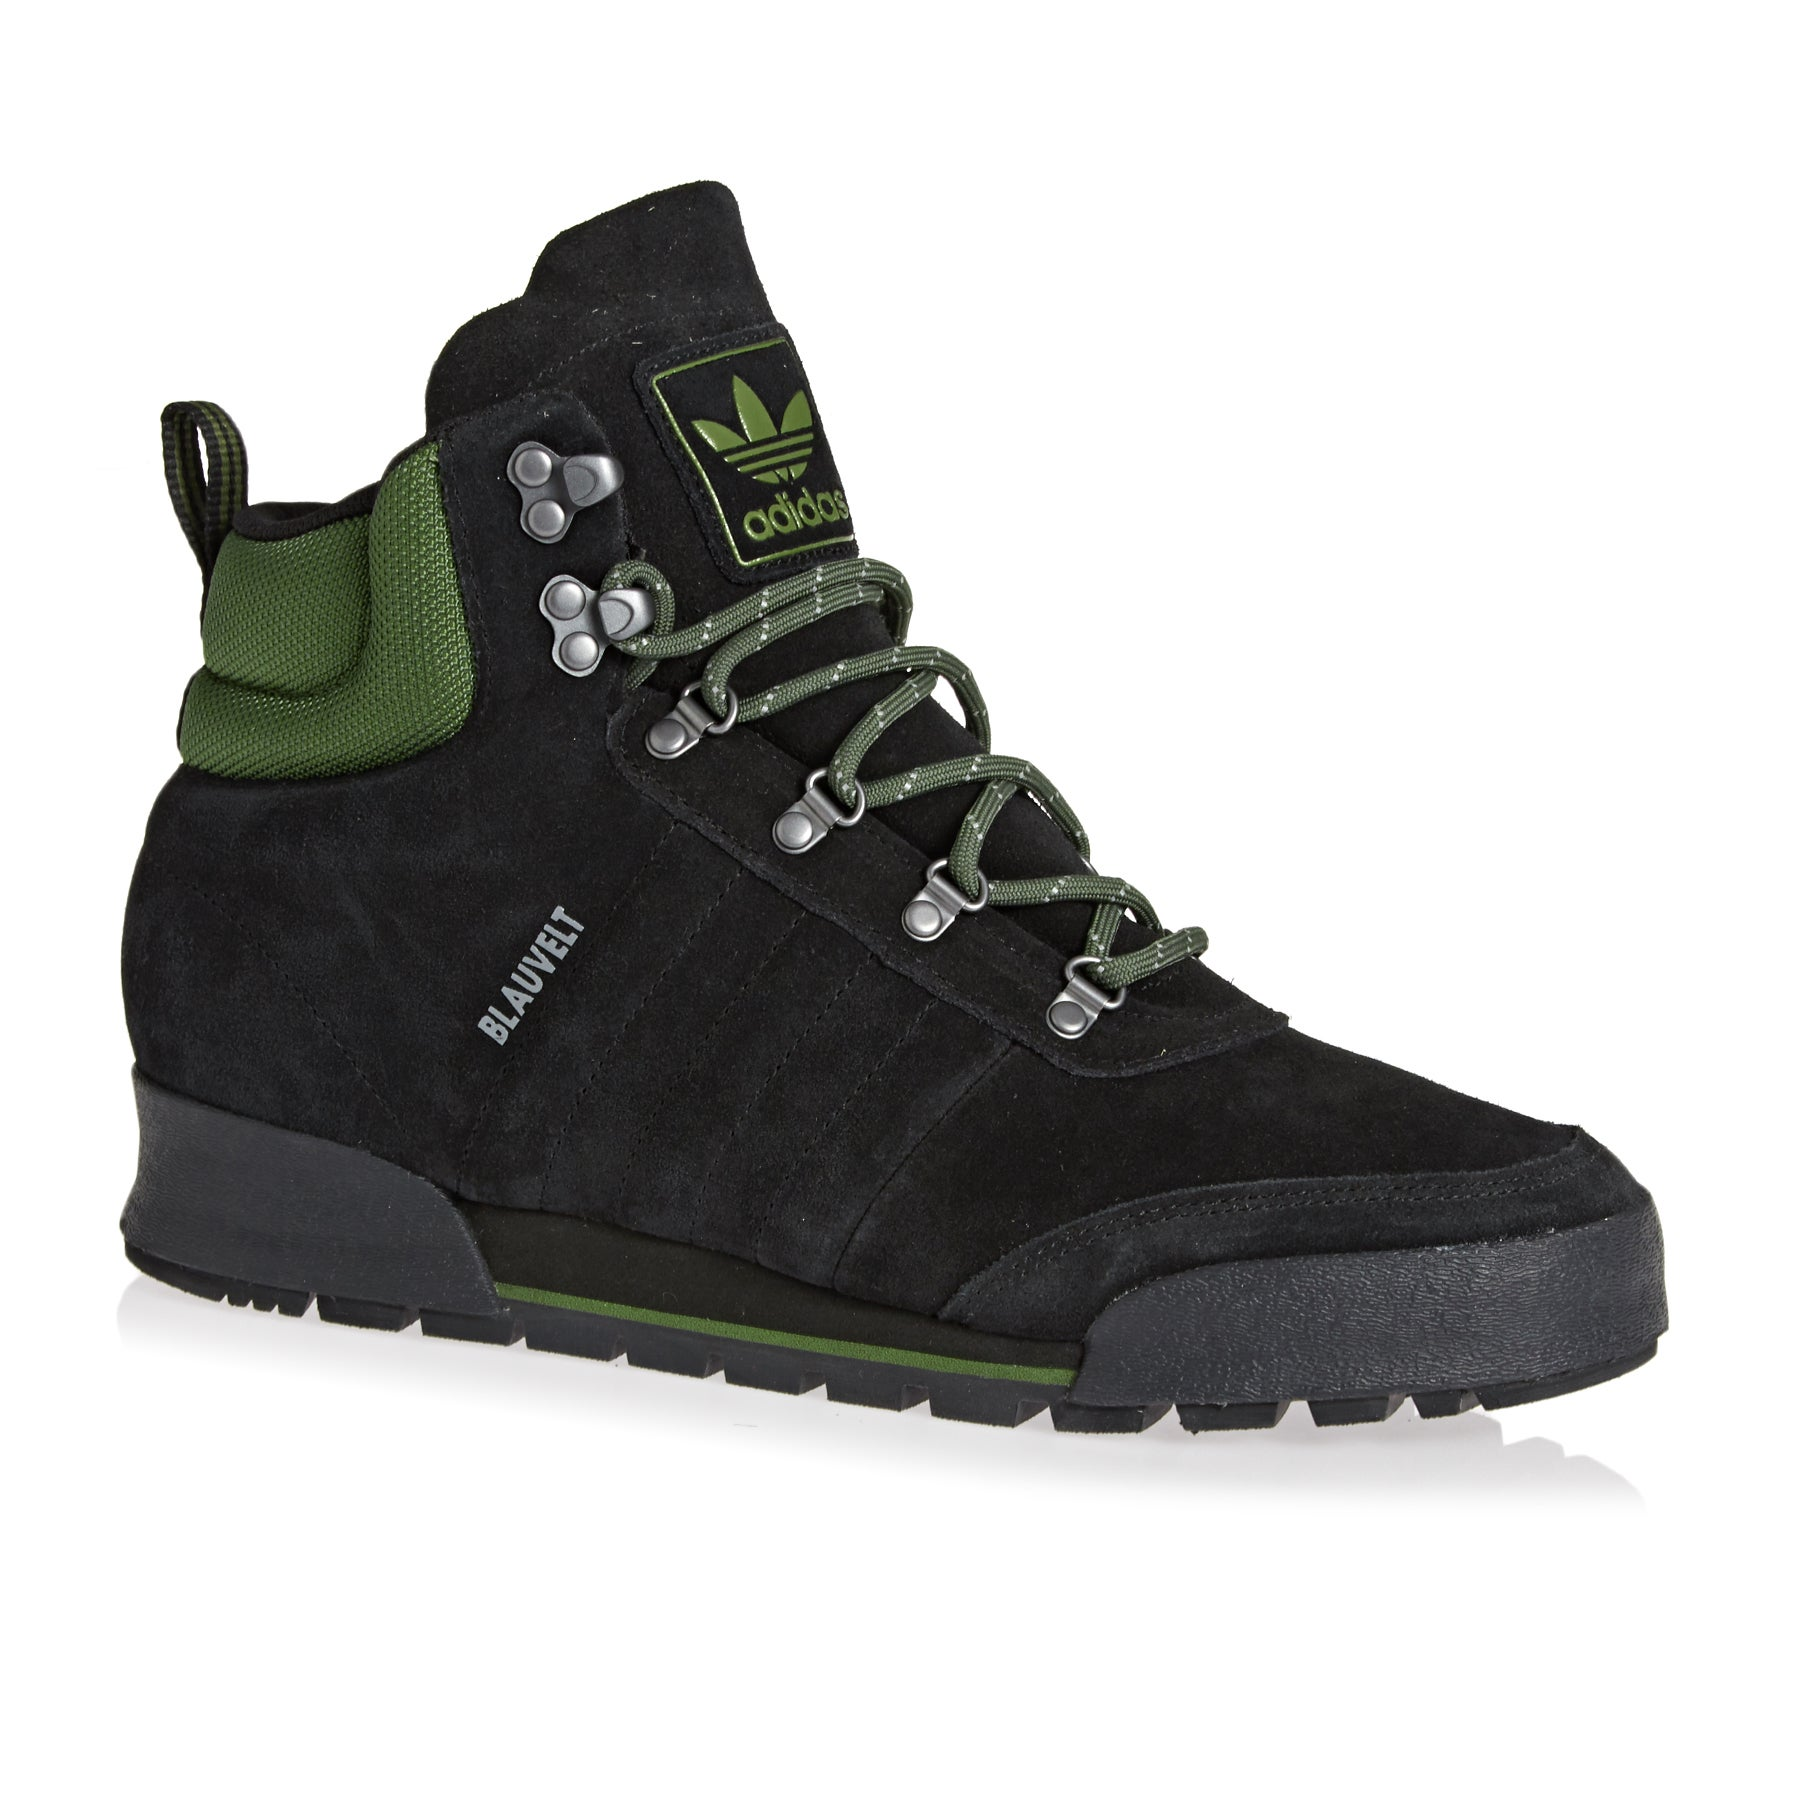 deb4aecfe8e40d Adidas Jake Boot 2.0 Walking Shoes available from Surfdome